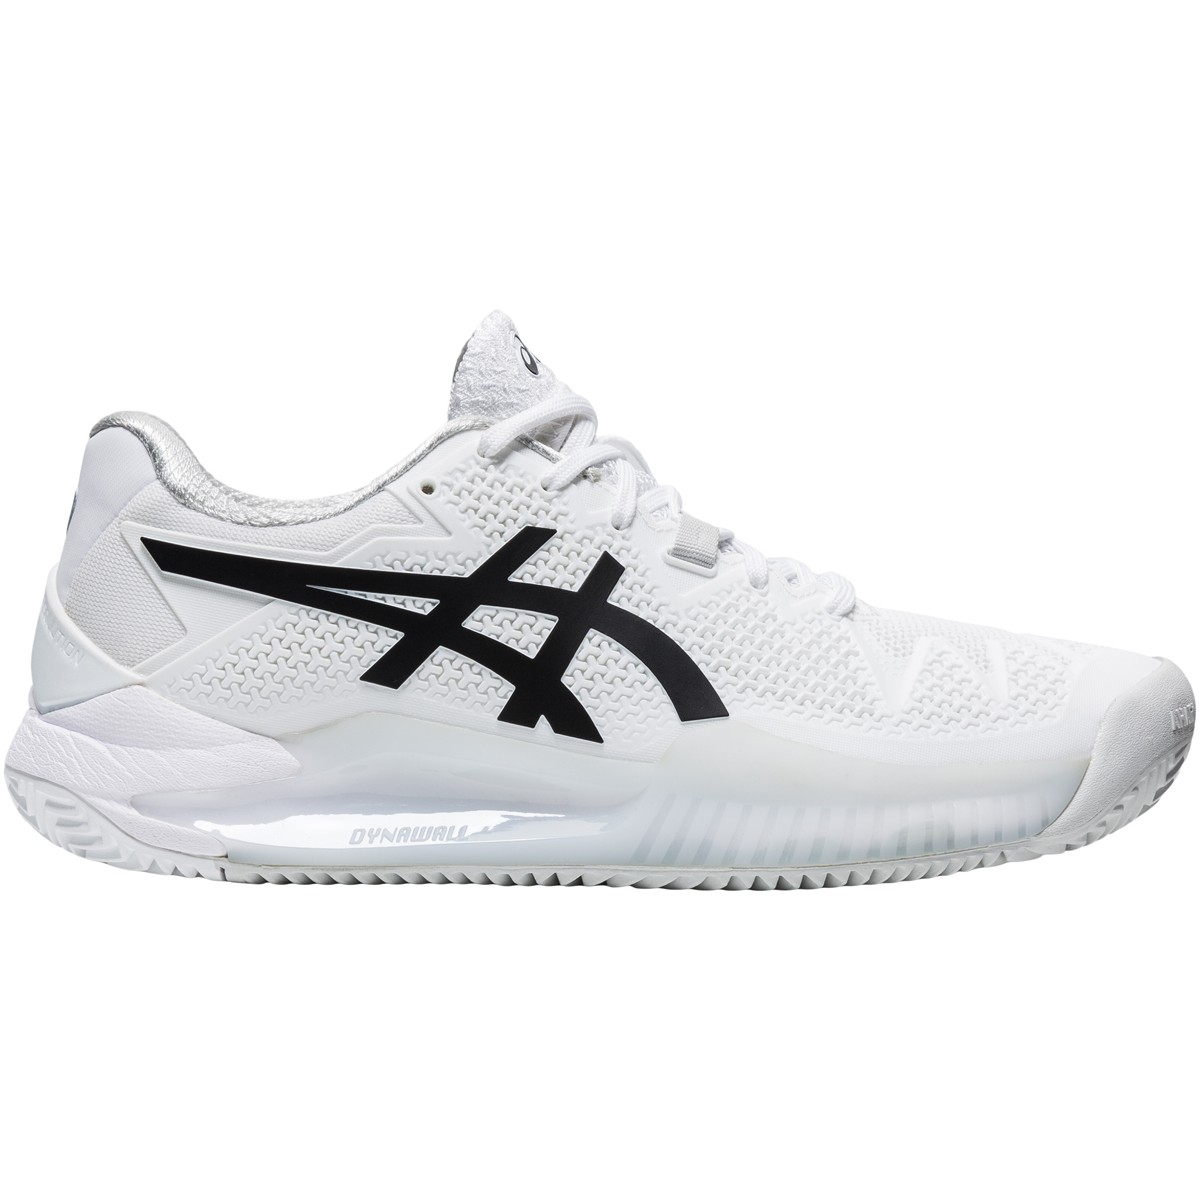 CHAUSSURES ASICS FEMME RESOLUTION EXCLUSIVE TERRE BATTUE - ASICS ...